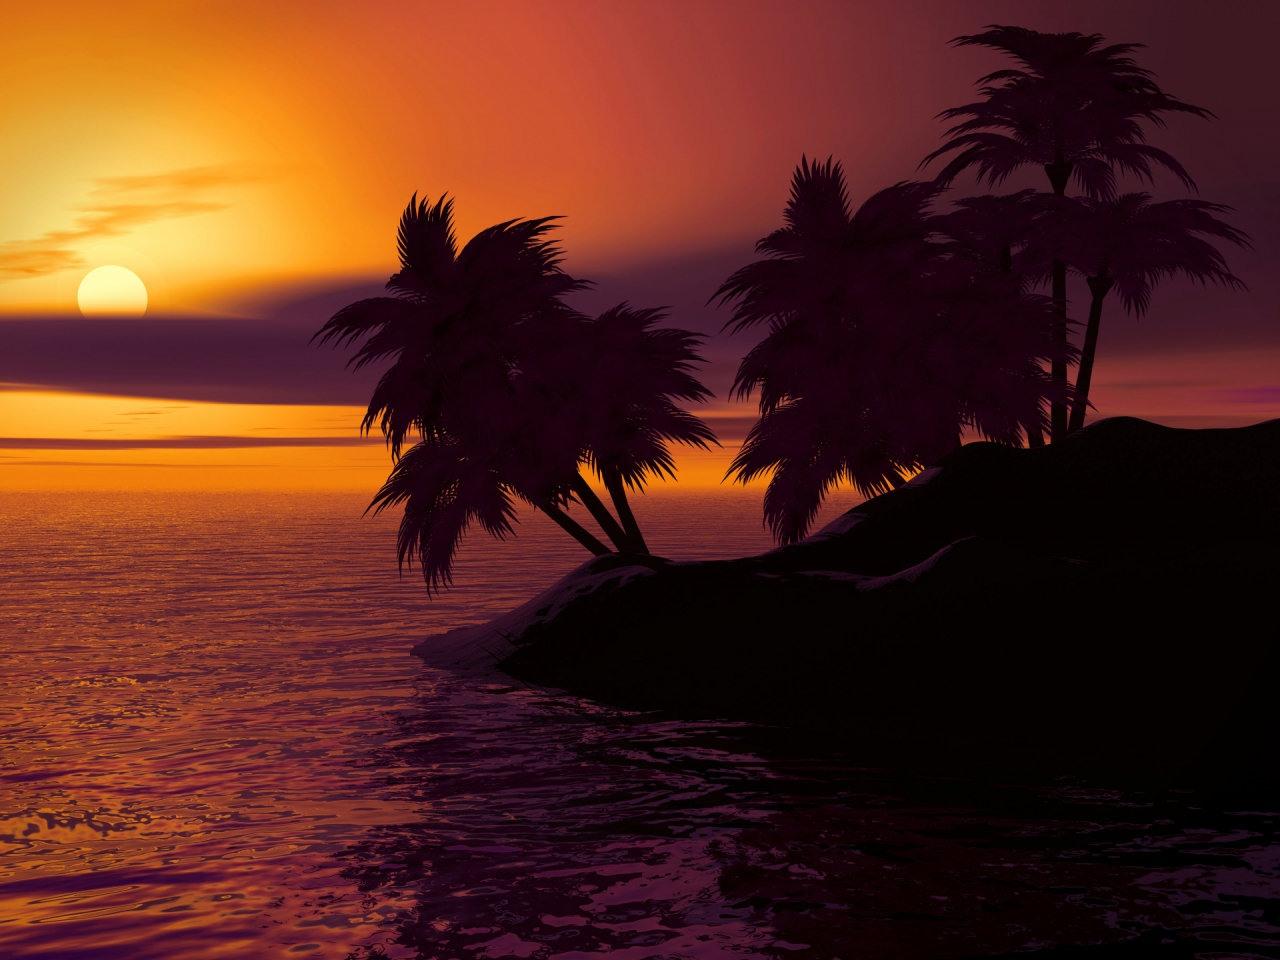 Caribbean island with palm trees and water during the sunrise